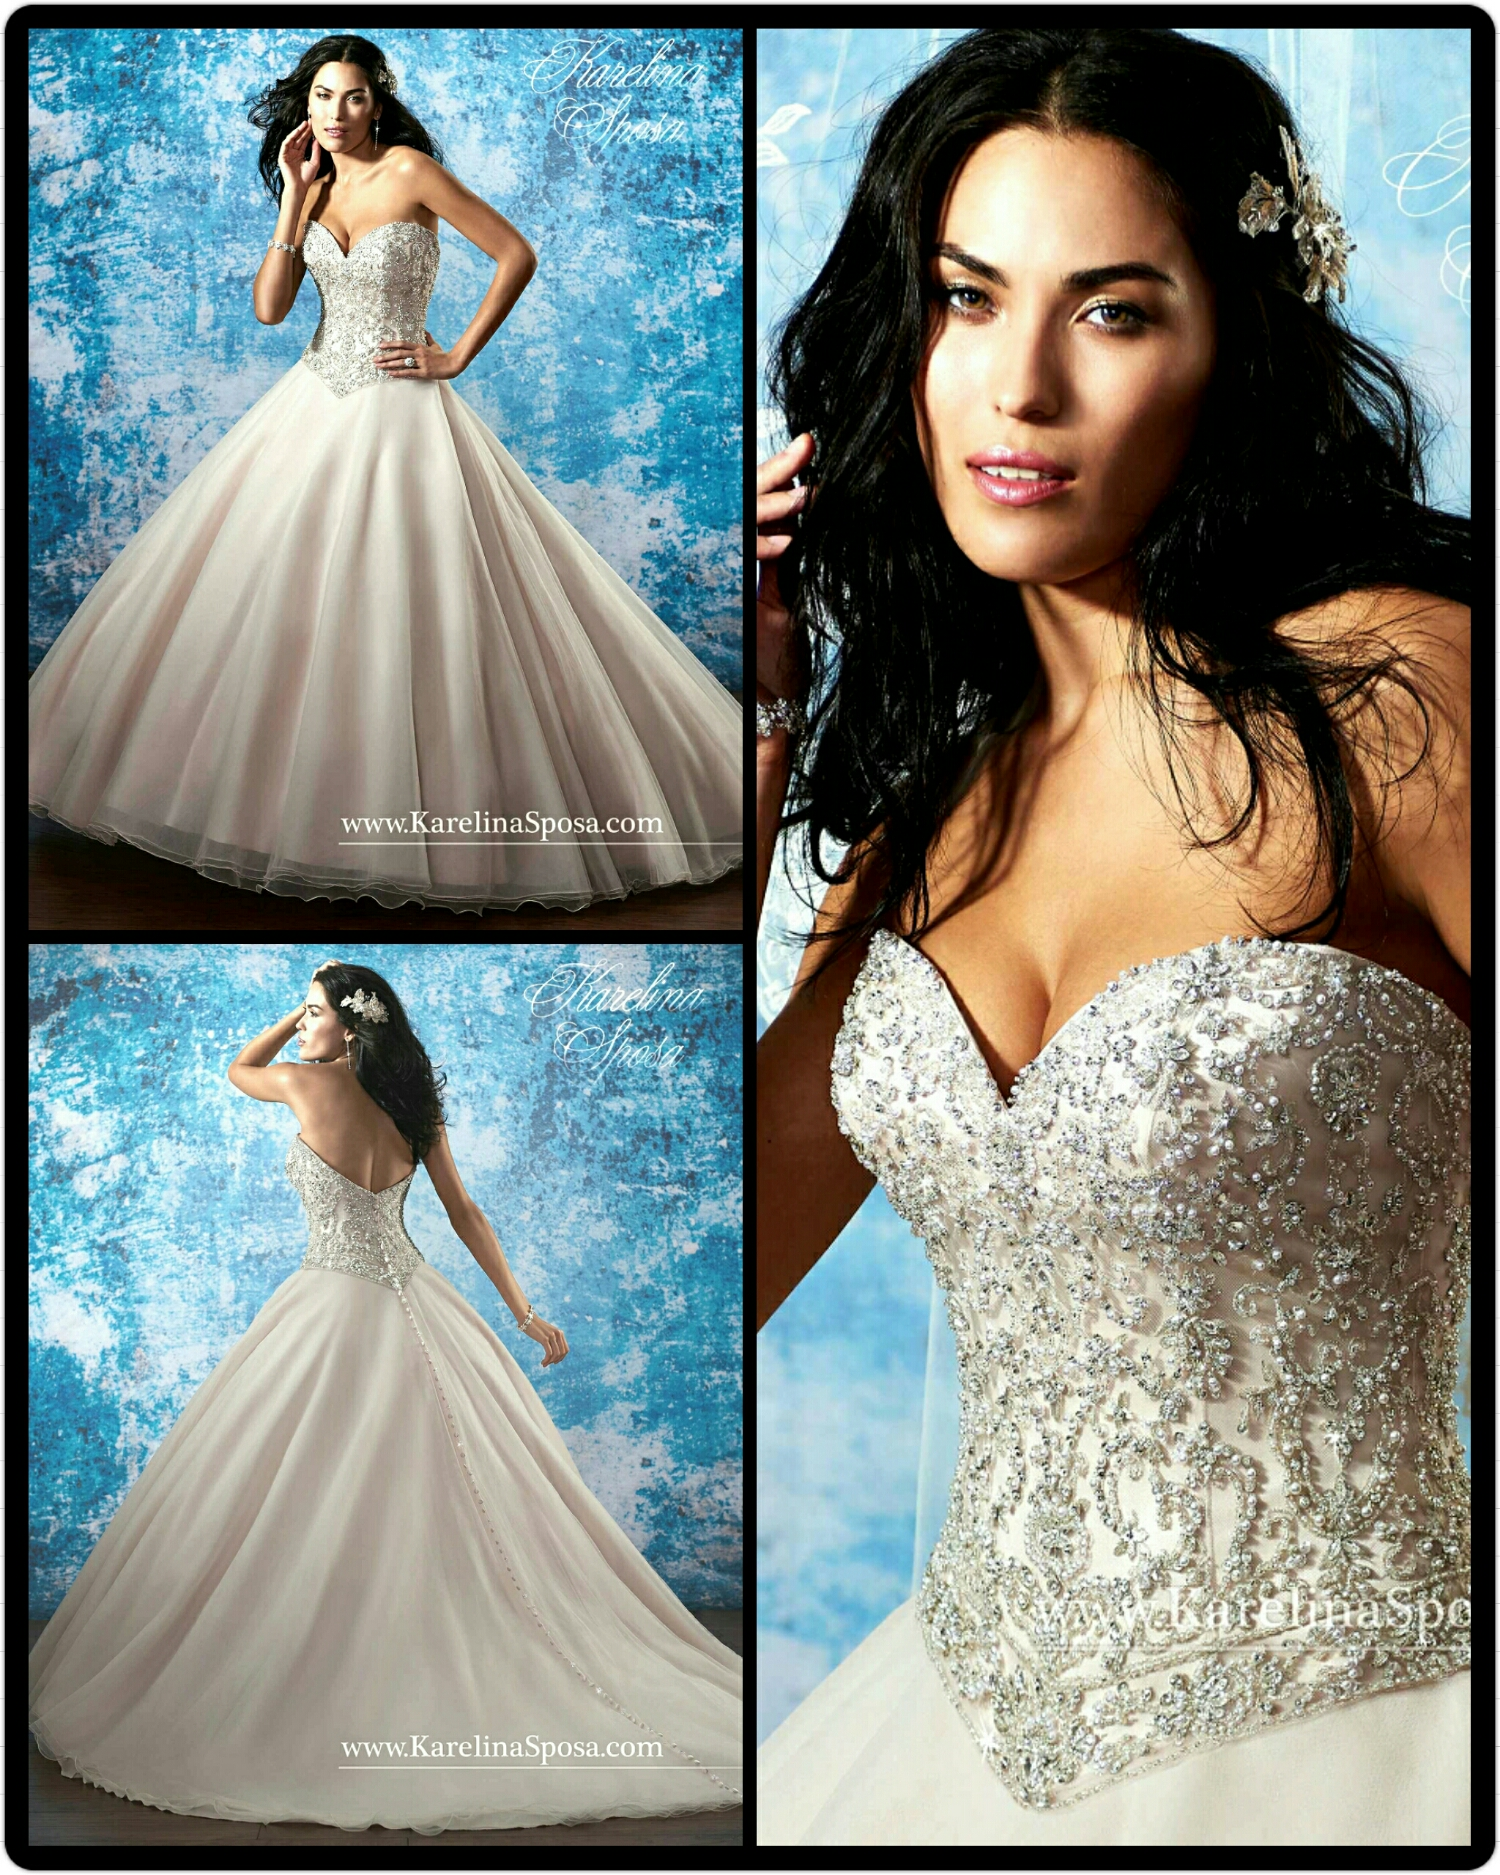 Favorite Wedding Gowns Of 2015 ~ Part 1 Traditional Gowns | TAGWeddings